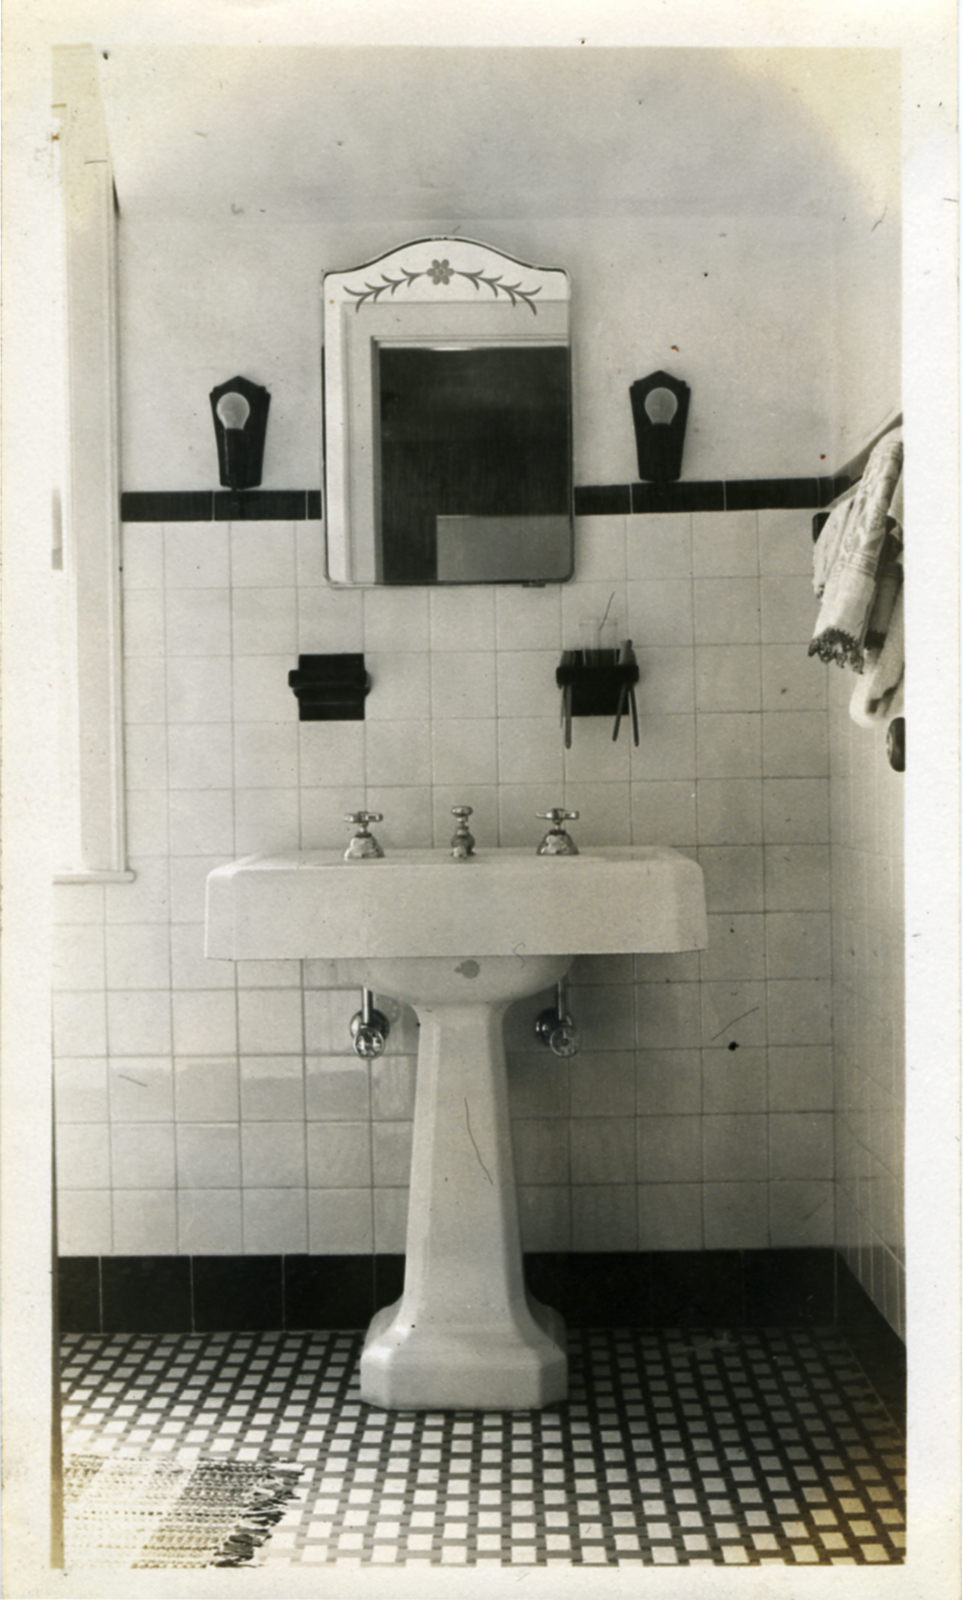 File:1930s bathroom.jpg - Wikimedia Commons